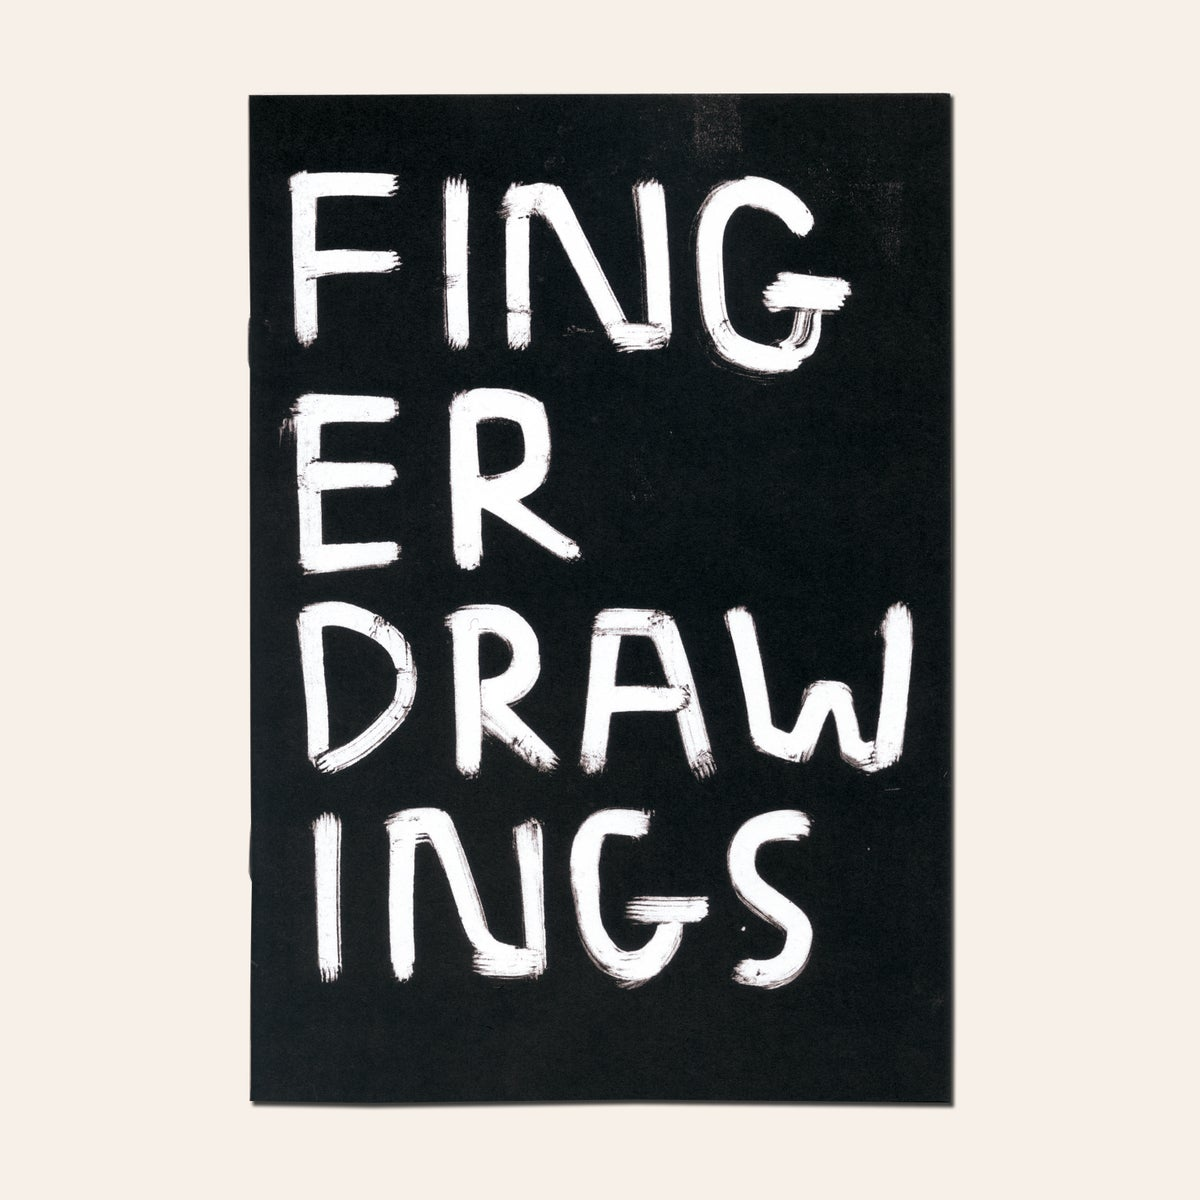 Image of Finger drawings